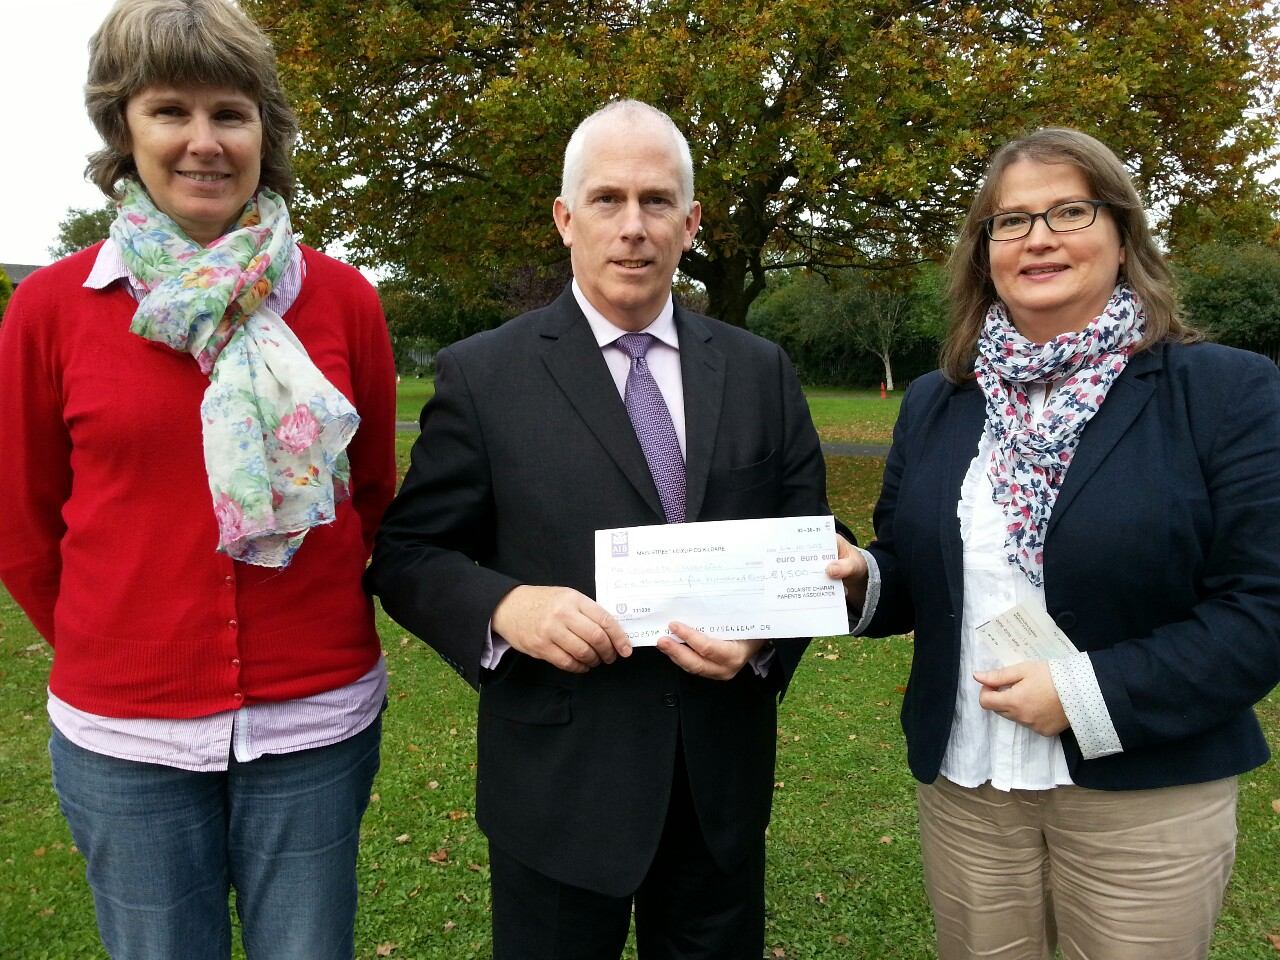 Parents Council members Anne Timmins and Claire O'Mahony presenting a cheque for €1500 for the development of the school library to the Principal Joe Sweeney. The money was raised through a number of fund raising initiatives organised by the Parents Council.